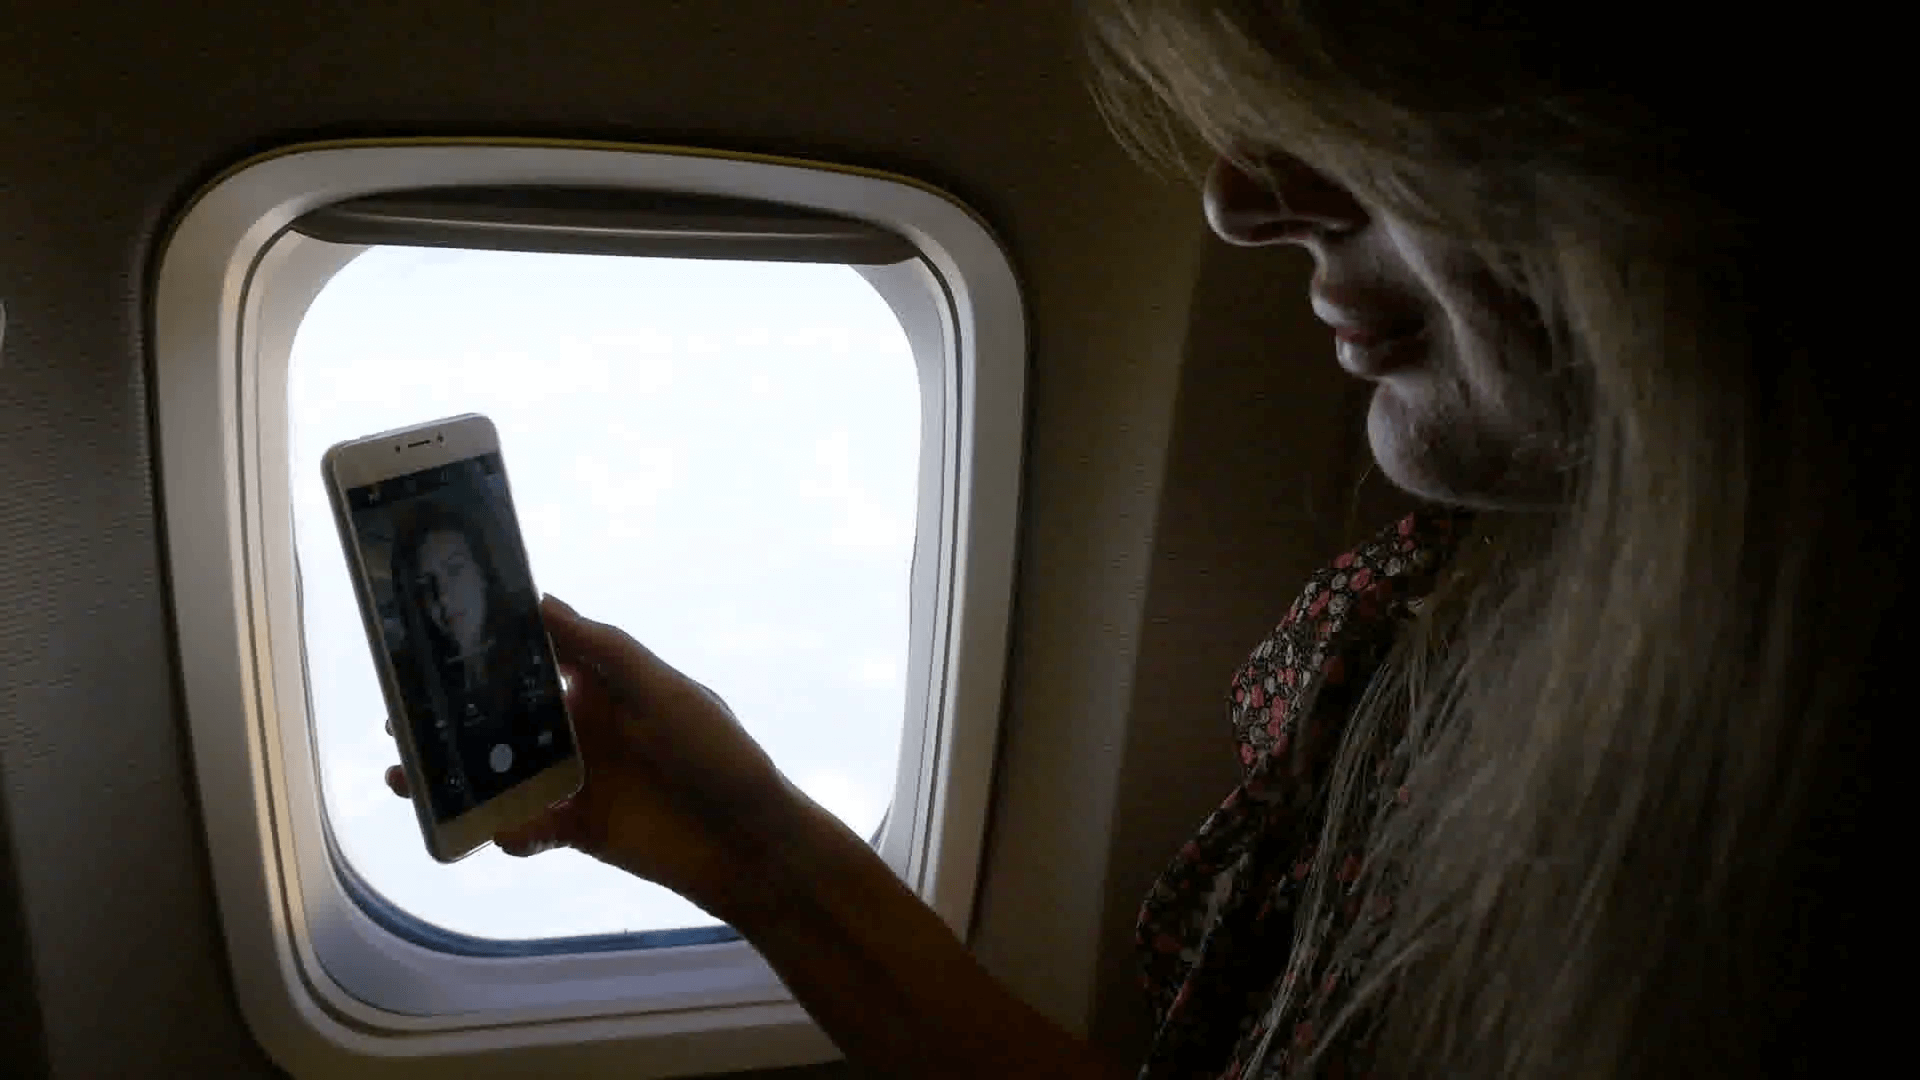 Survey: Travelers becoming less social on planes